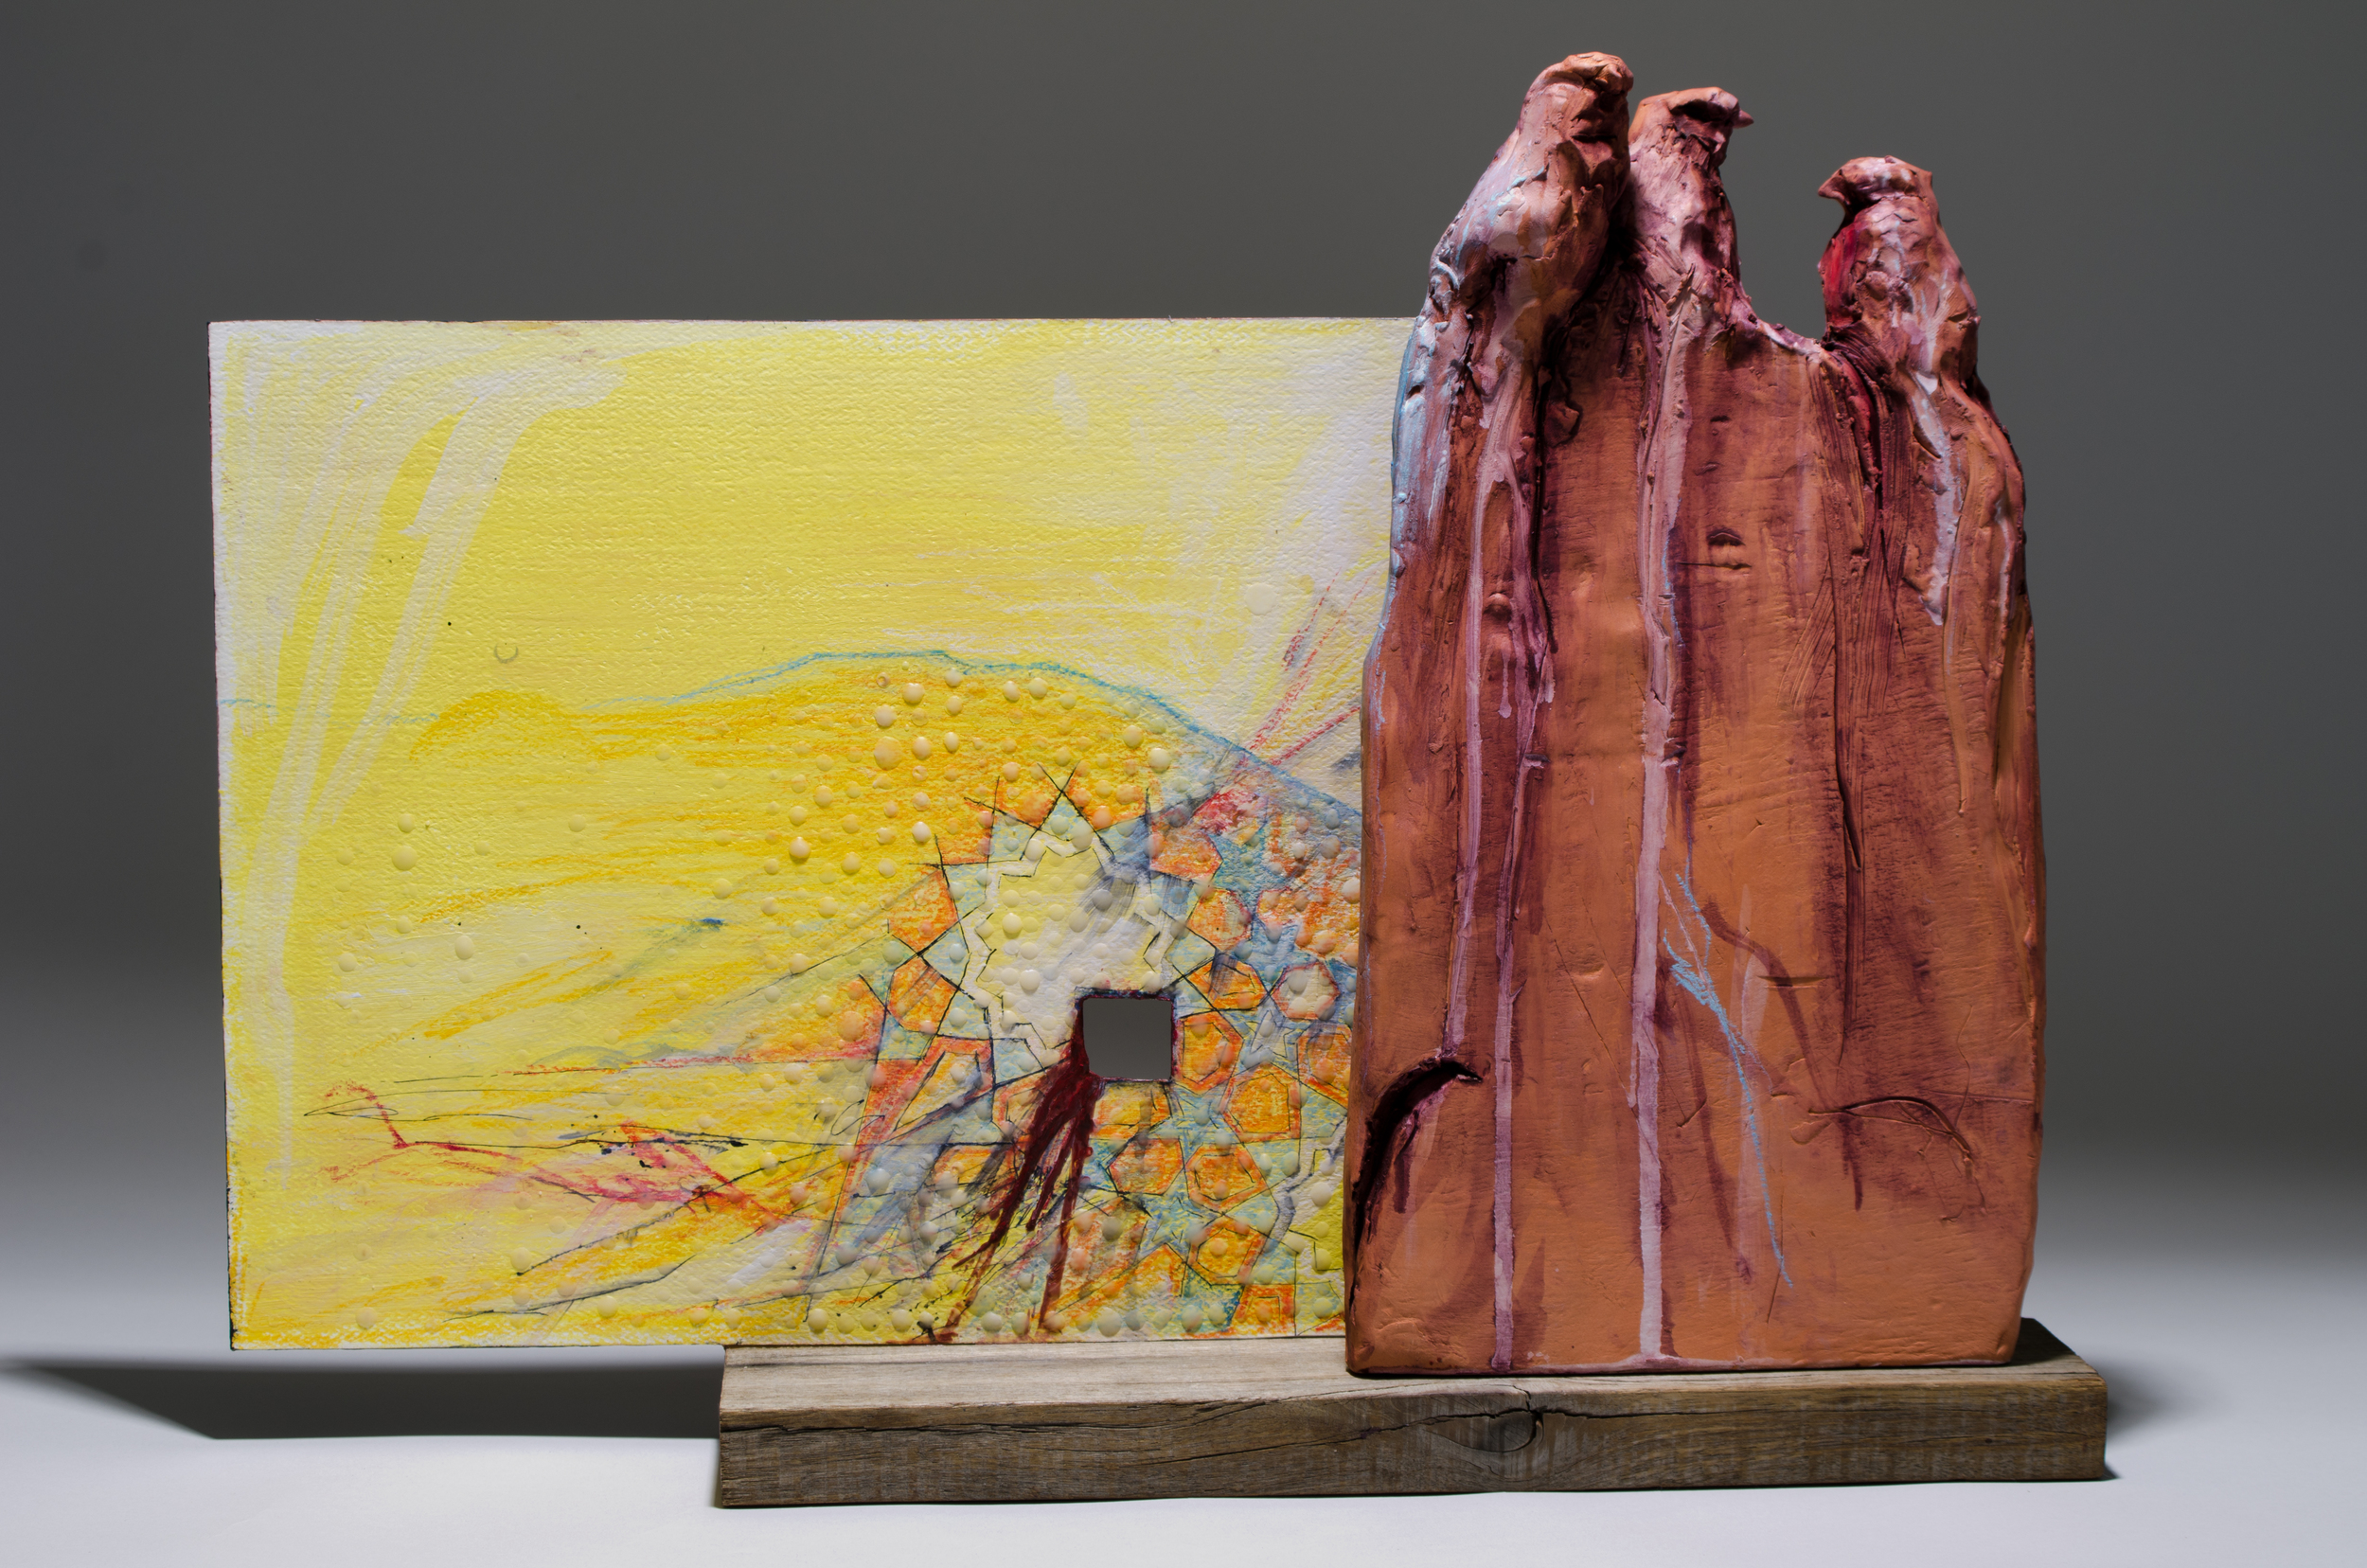 """H: 14.5"""" Terra Cotta, Wood, Paper, Wax, Wheat, Paint, Ink, Pastel.                                                                                                      The lemon yellow wall    Cells made of nut tree wood    The heart"""